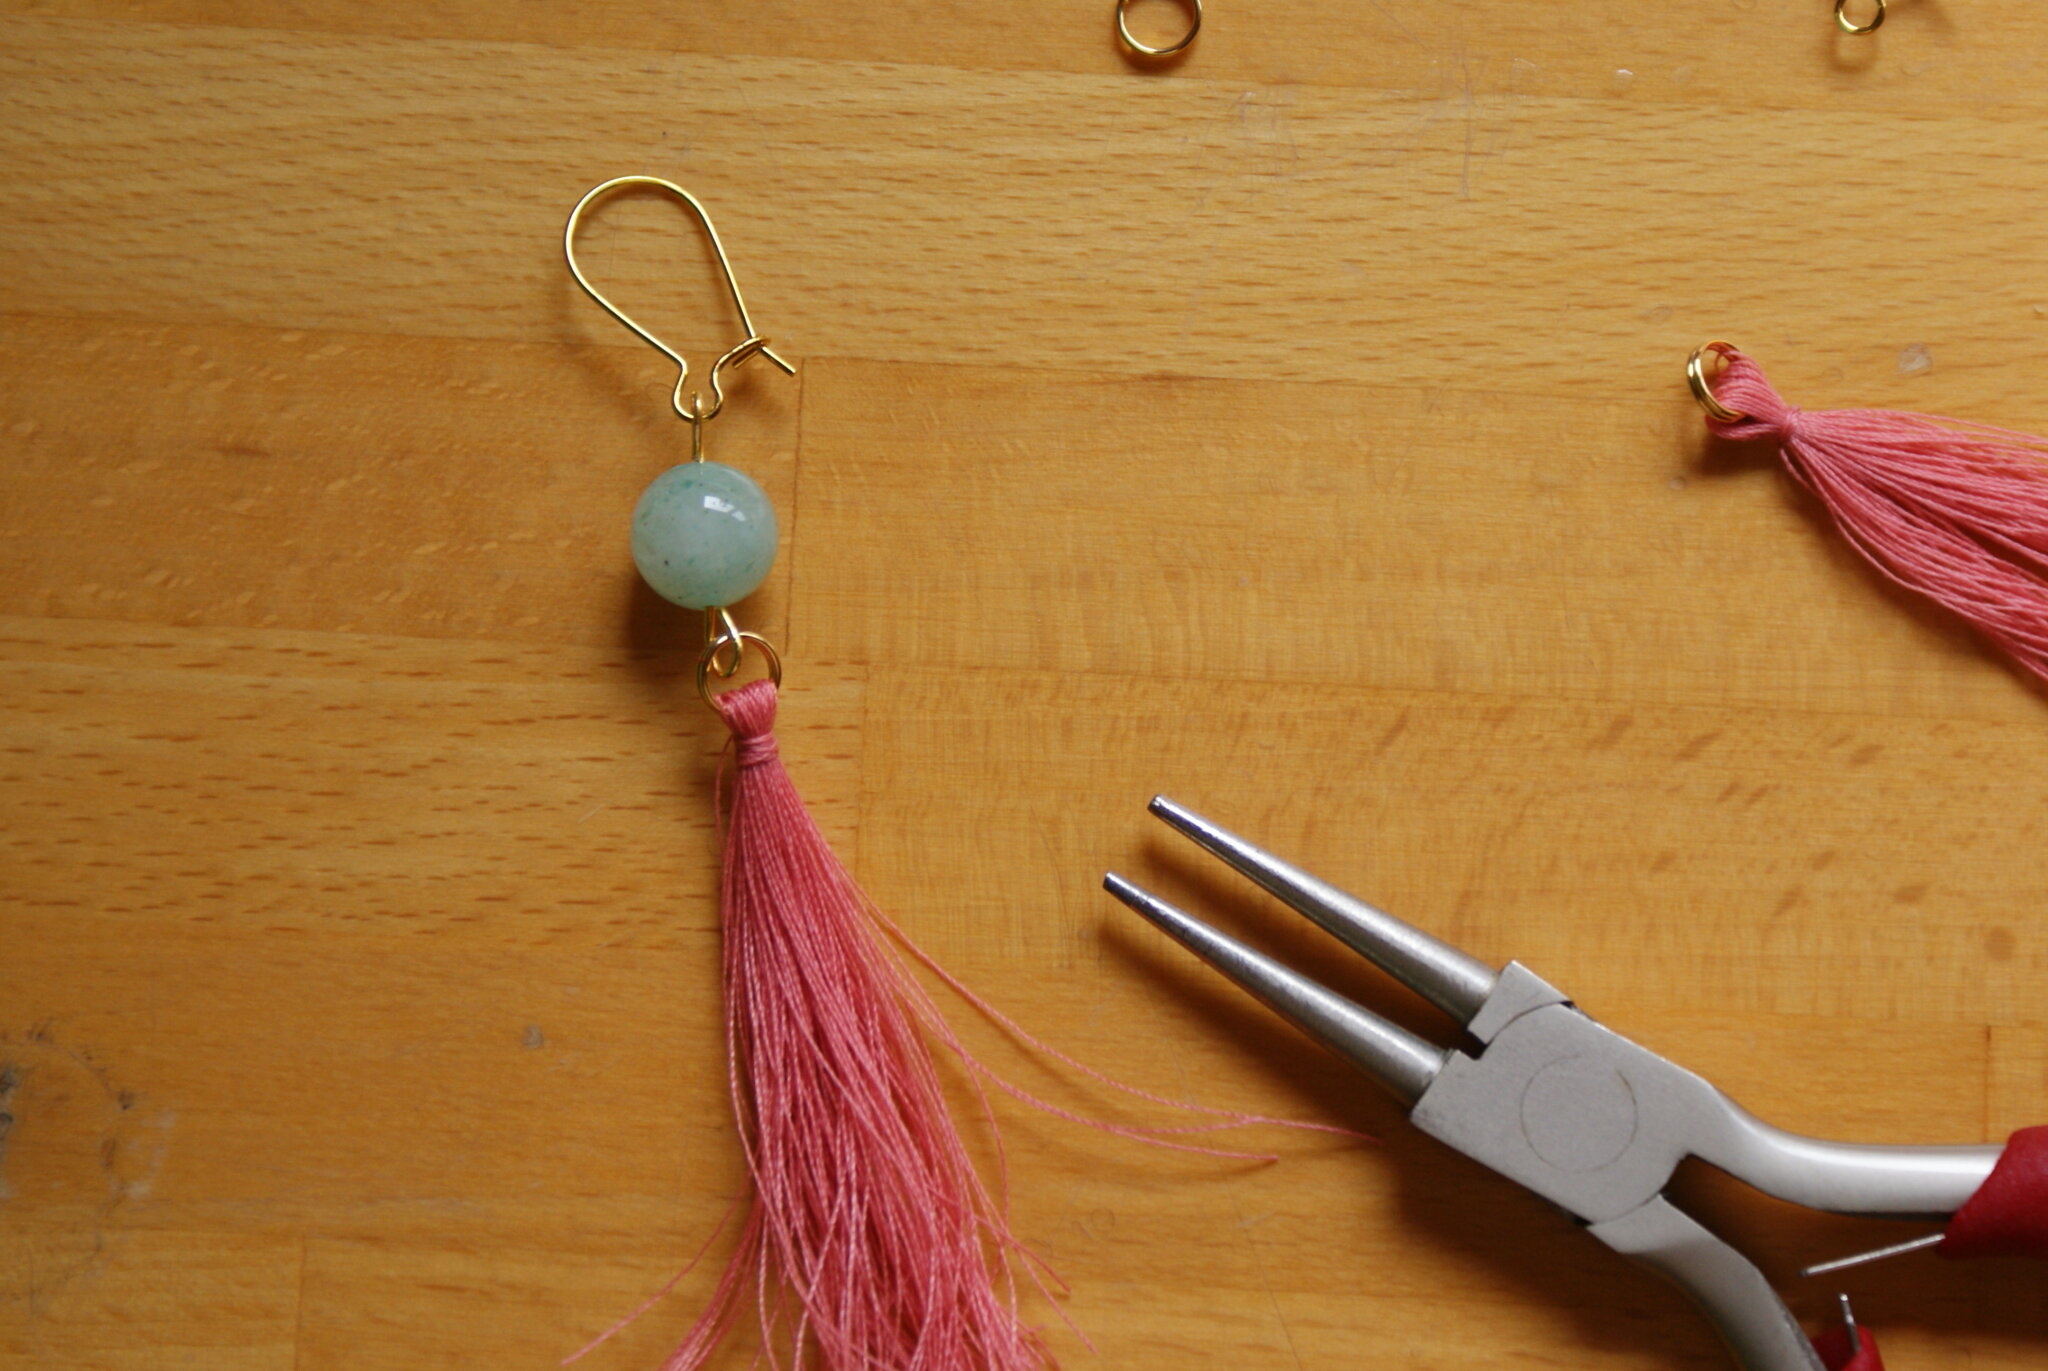 diy tassel earrings easy quick tutorial